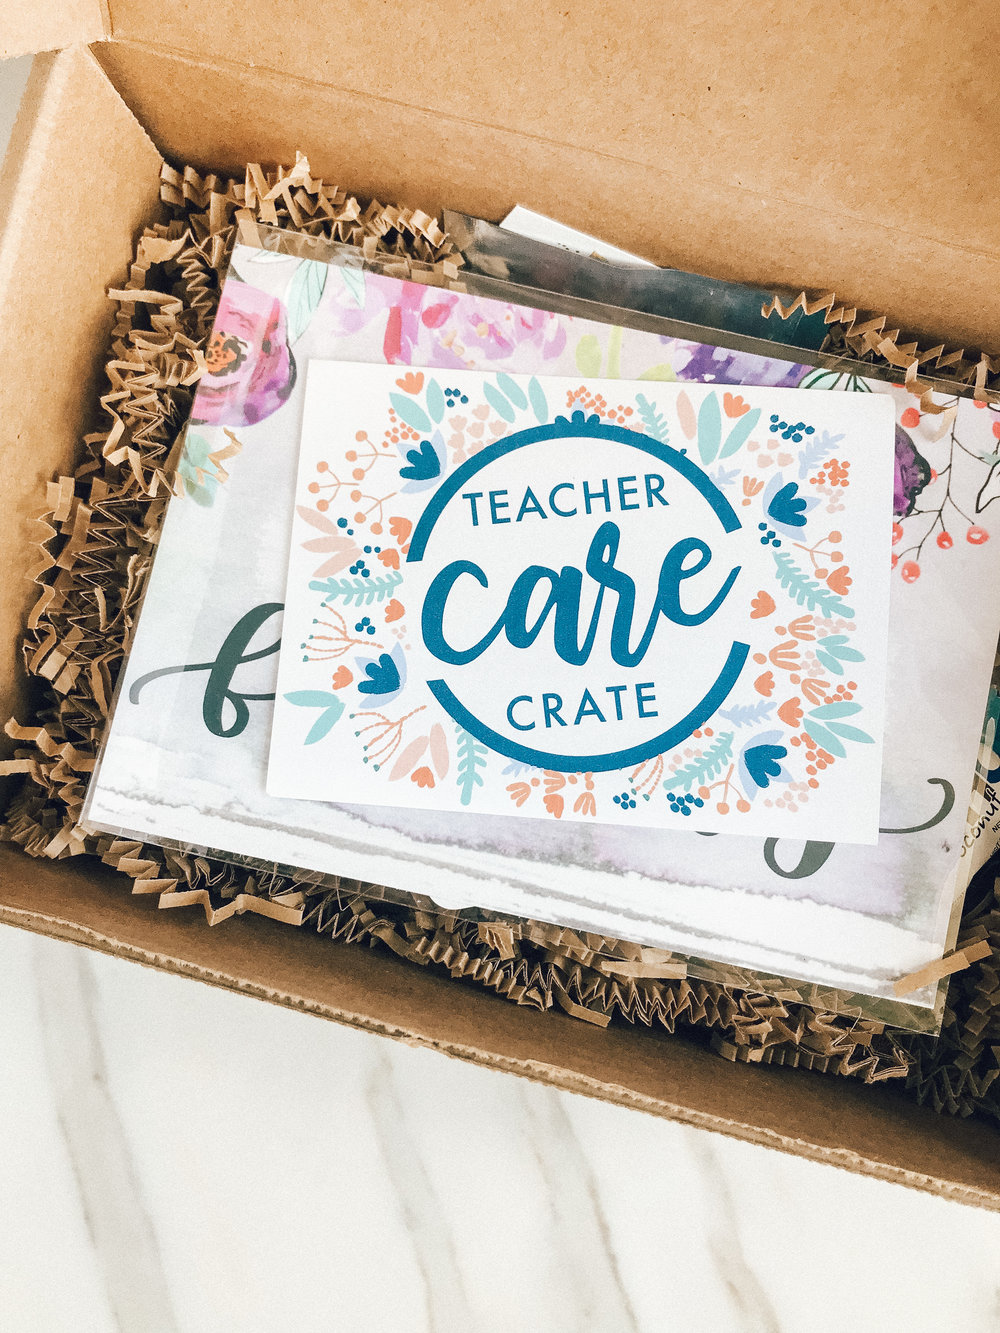 Teacher Care Crate - Self-care subscription for teachers